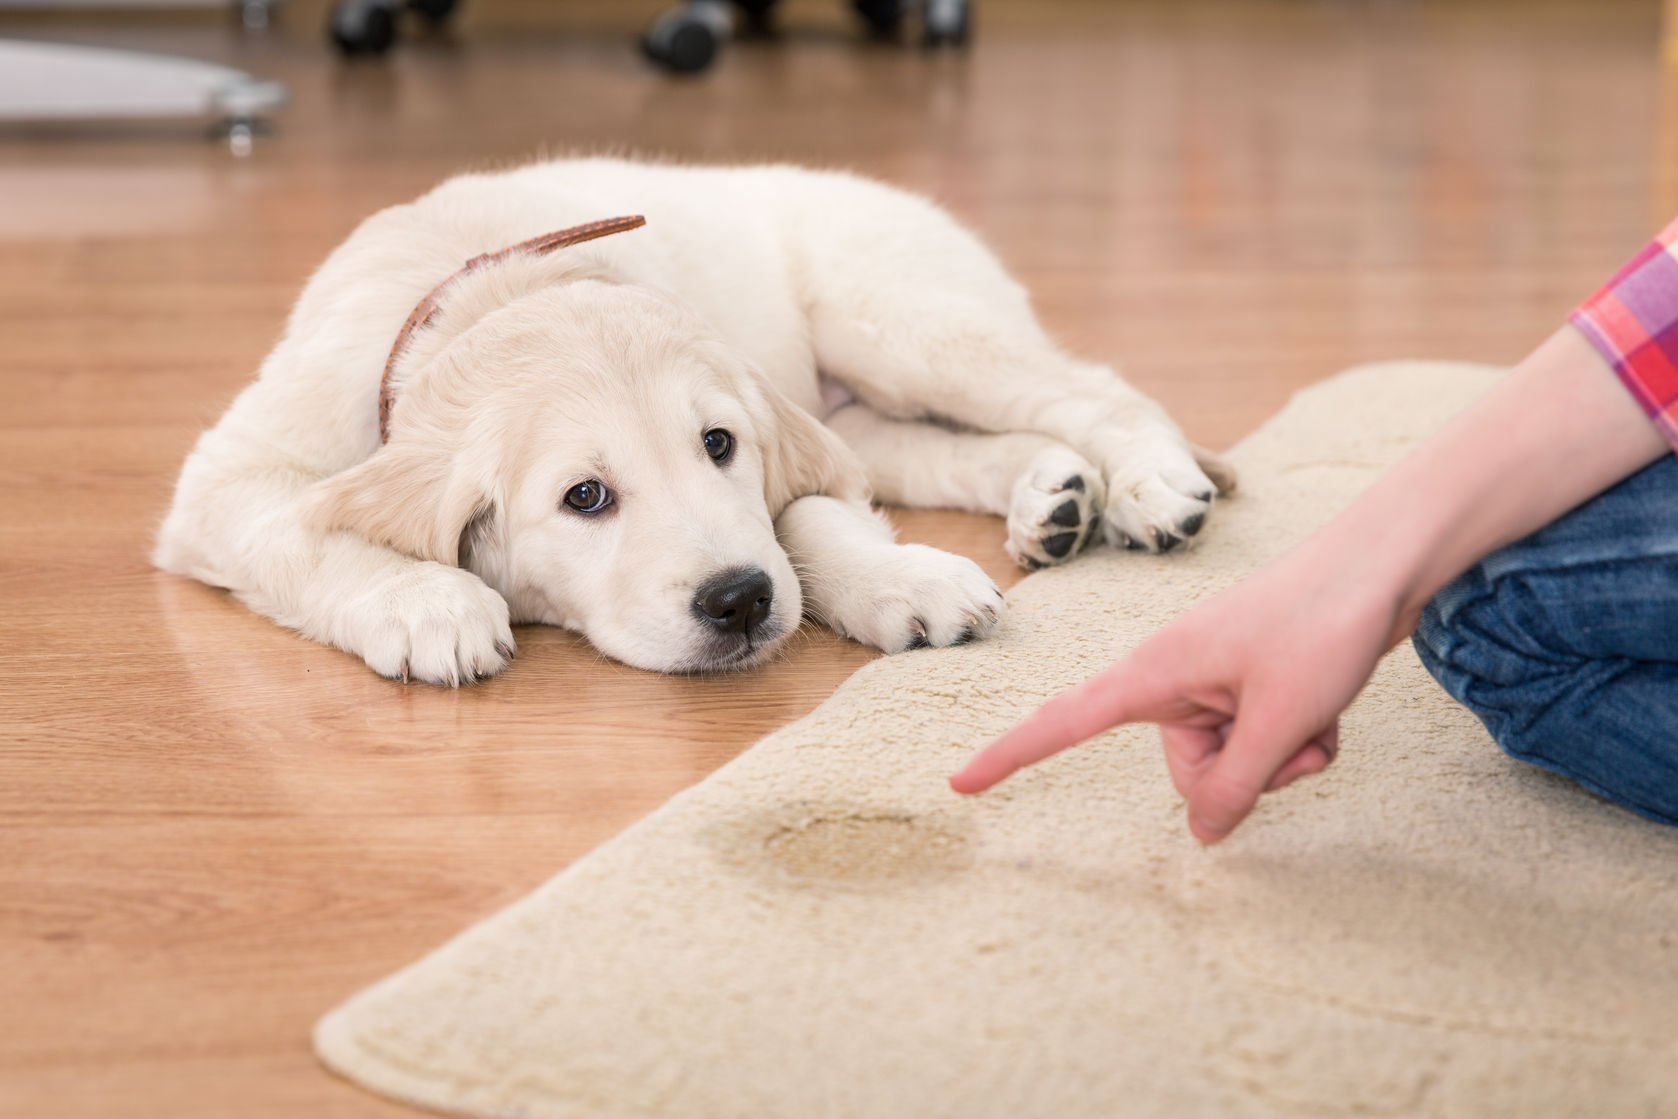 How to Potty Train a Puppy Fast and Forever